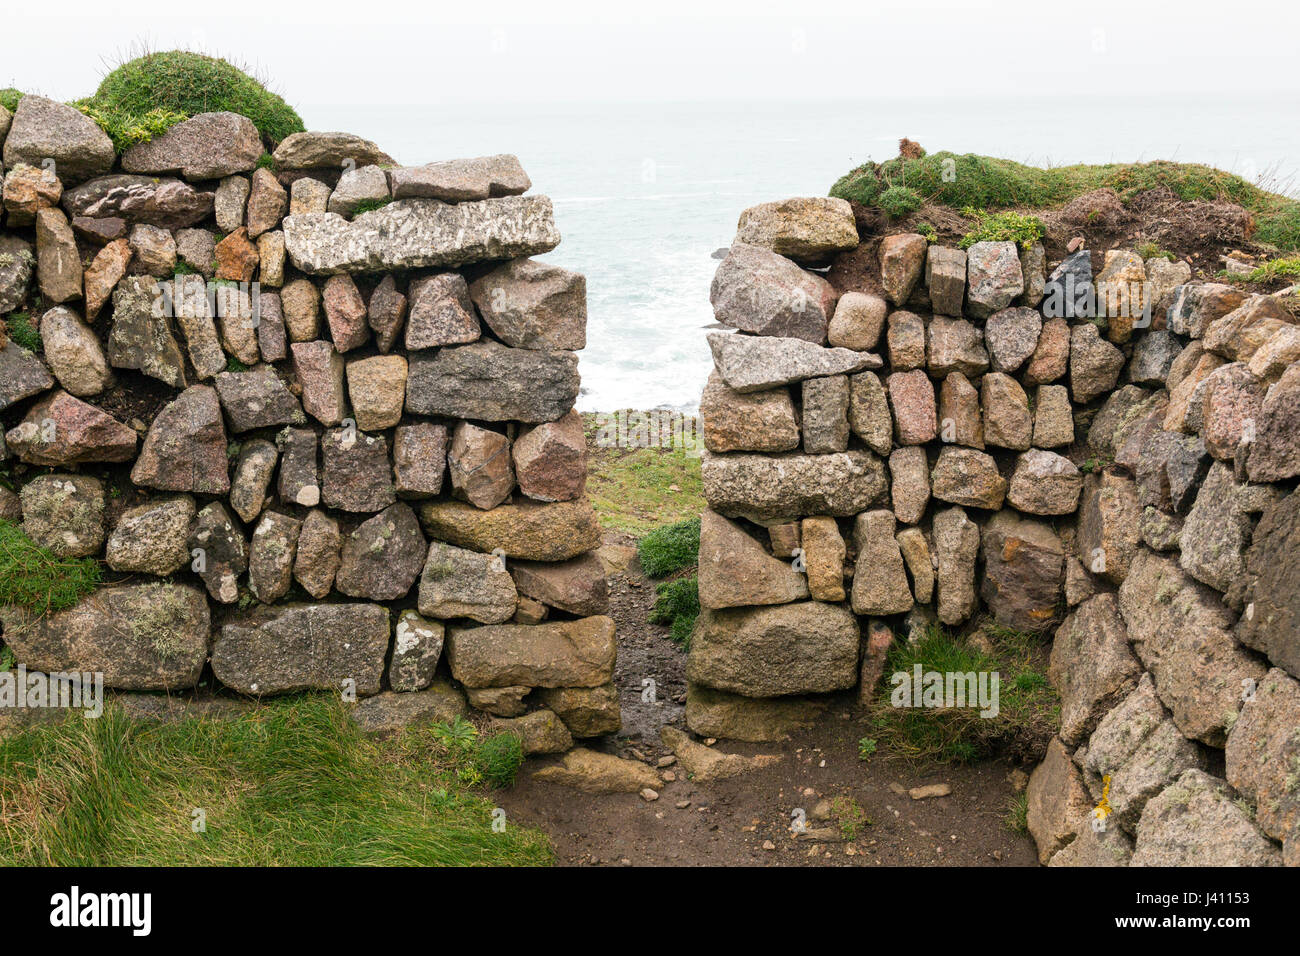 [Image: a-squeeze-stile-in-a-dry-stone-wall-buil...J41153.jpg]